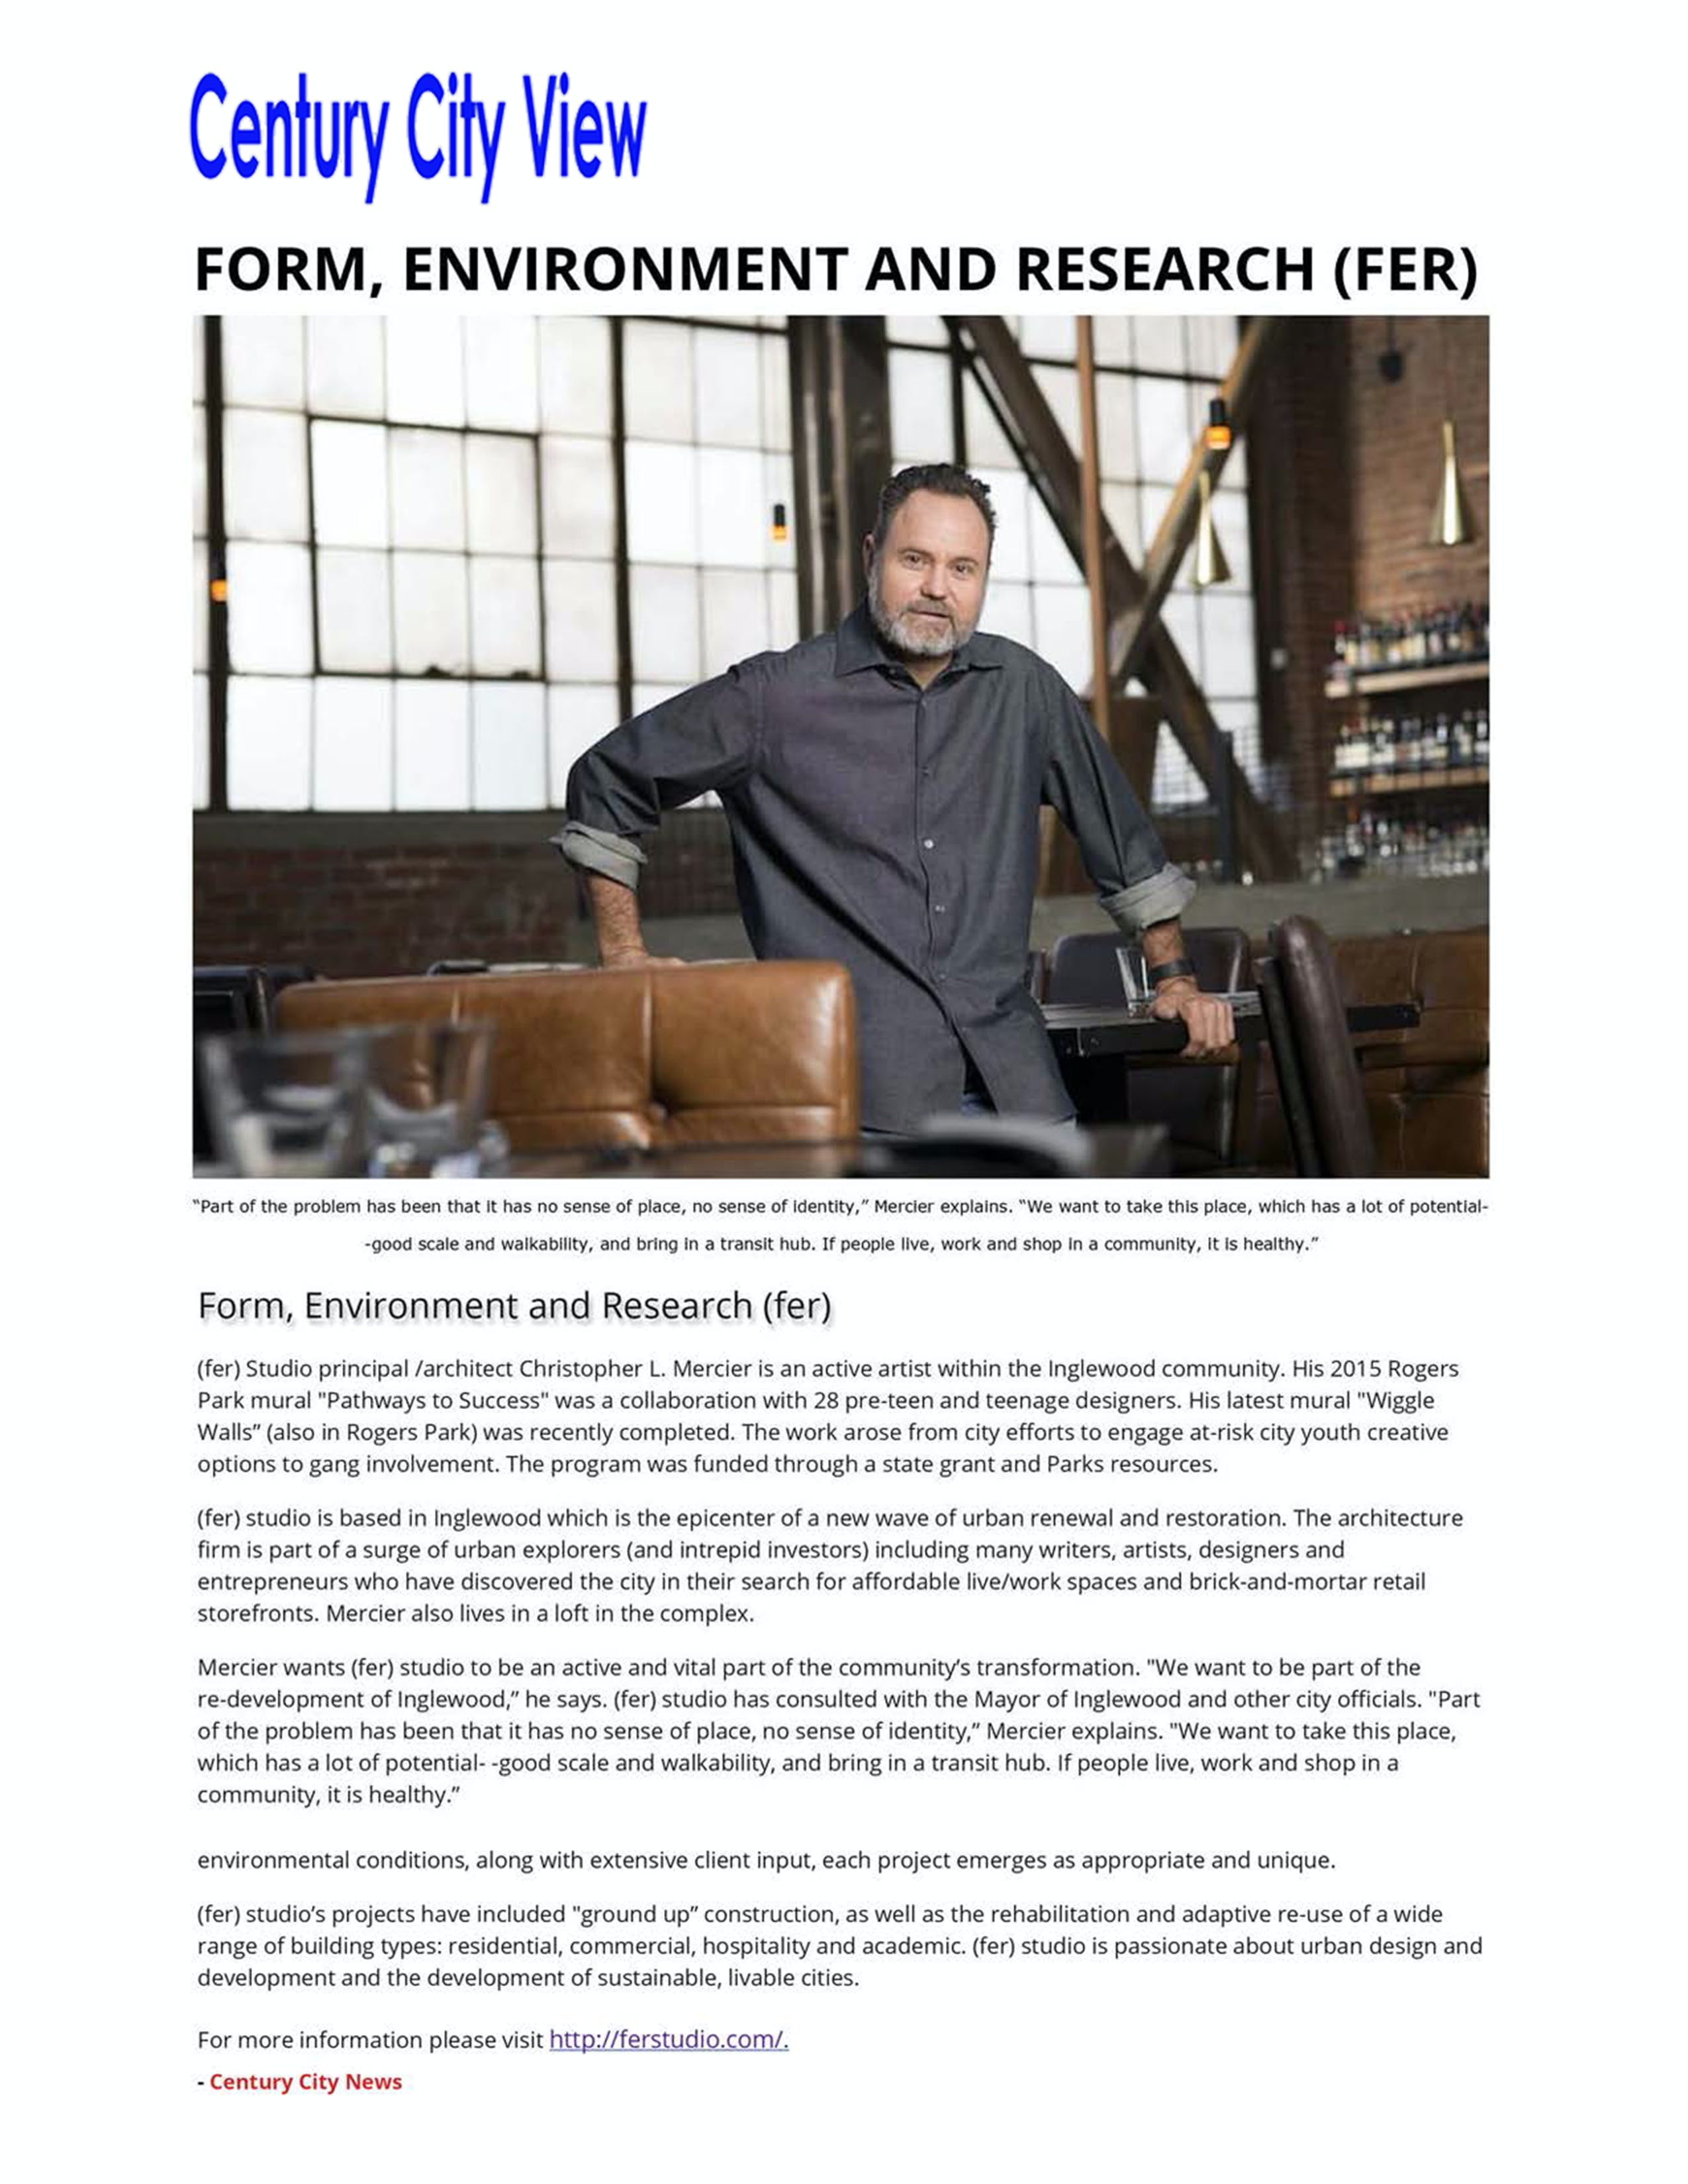 Form environment and research fer